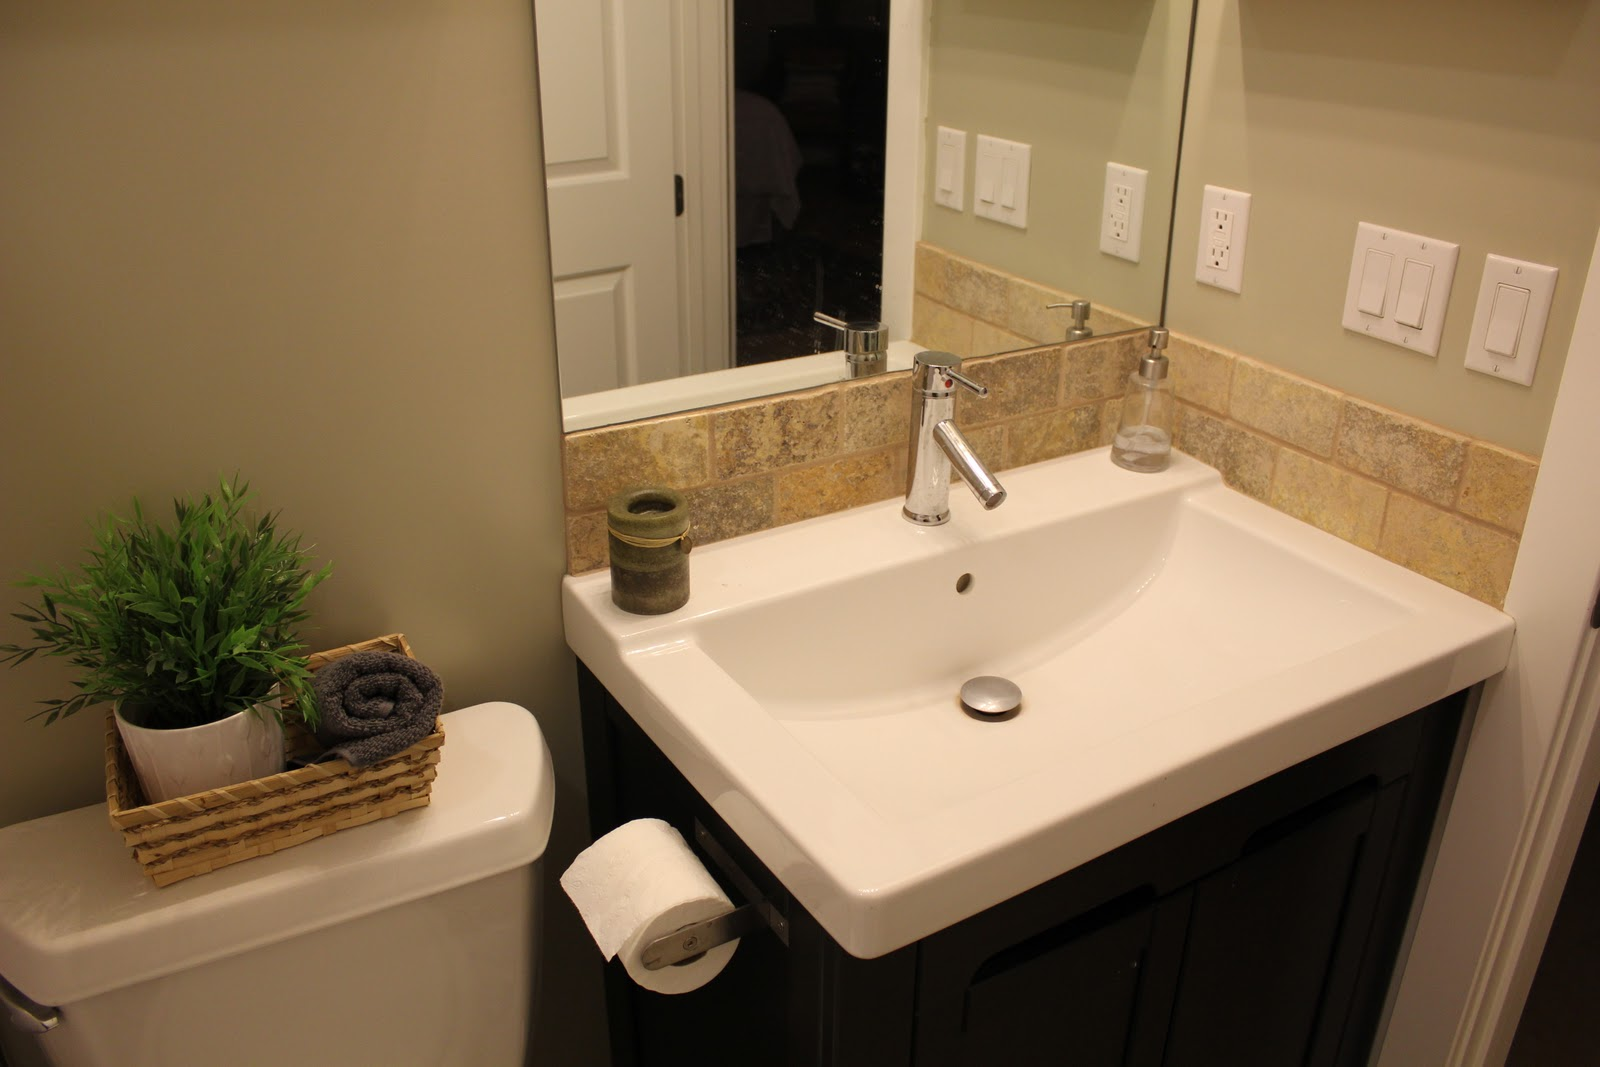 backsplash toilet suite revival bathroom tour 940